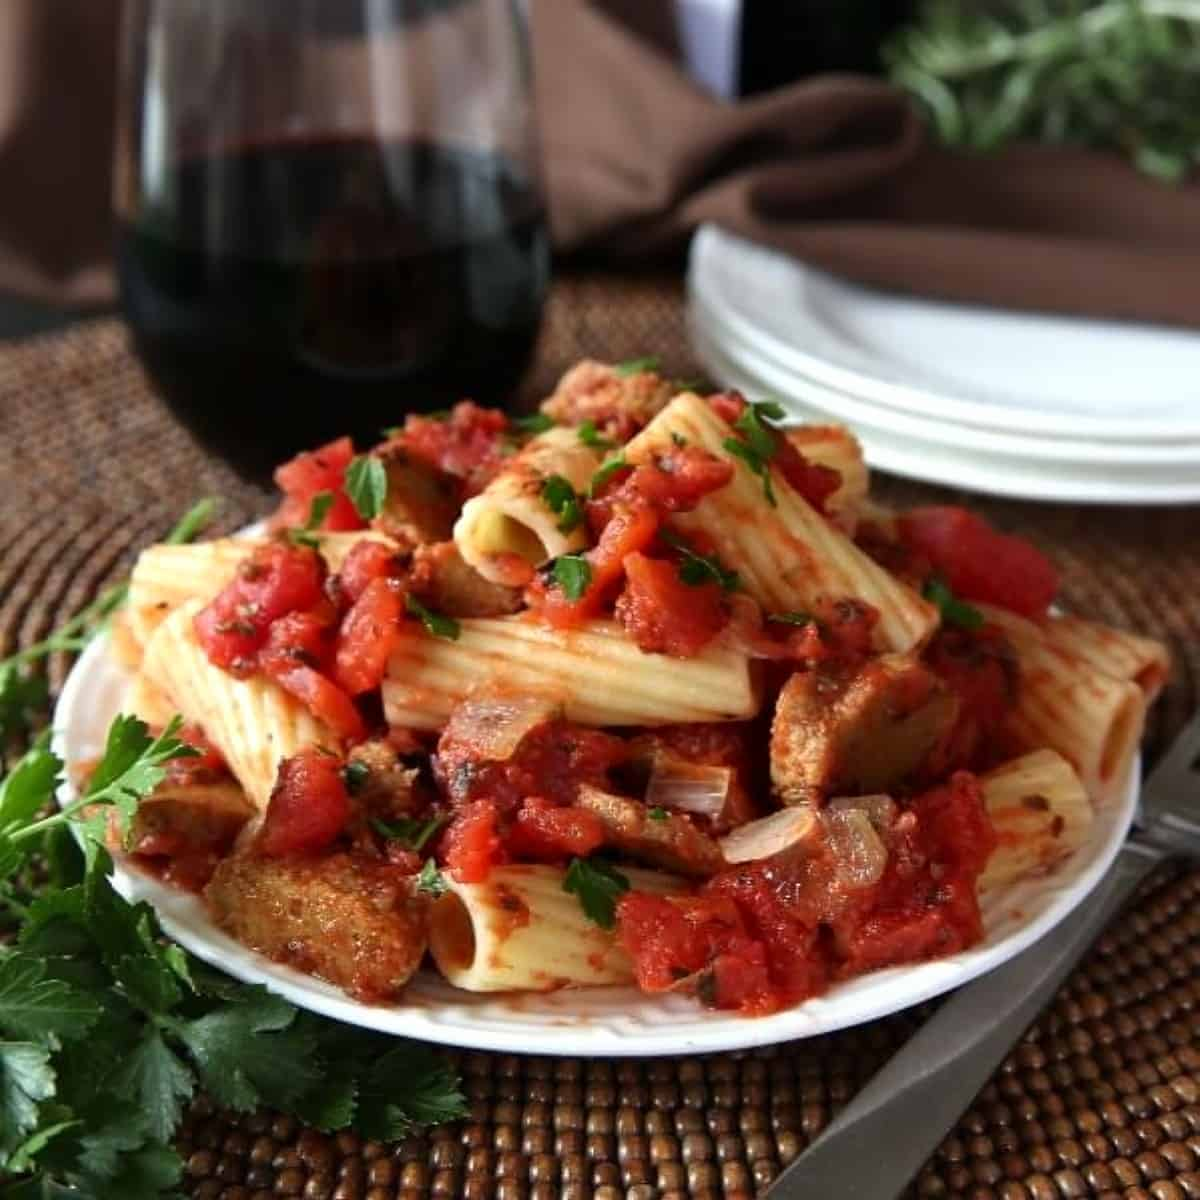 Seitan rigatoni pasta is piled on a white plate and mixed with a tomato sauce.